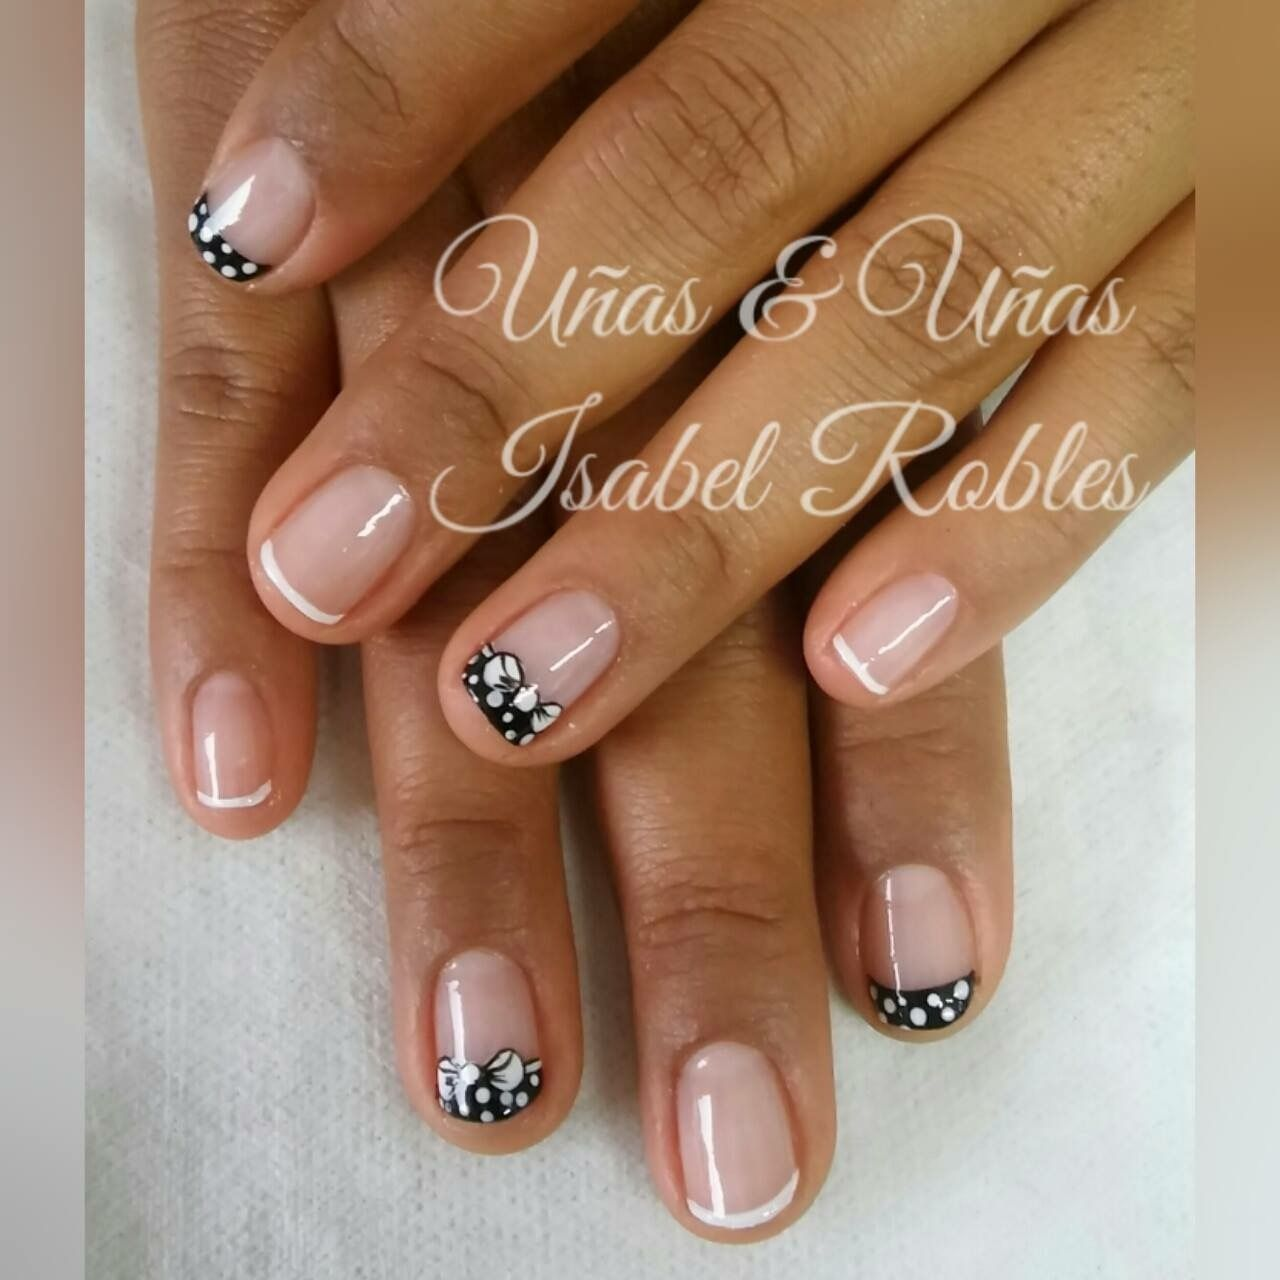 Pin by Vane on Uñas | Pinterest | French nails